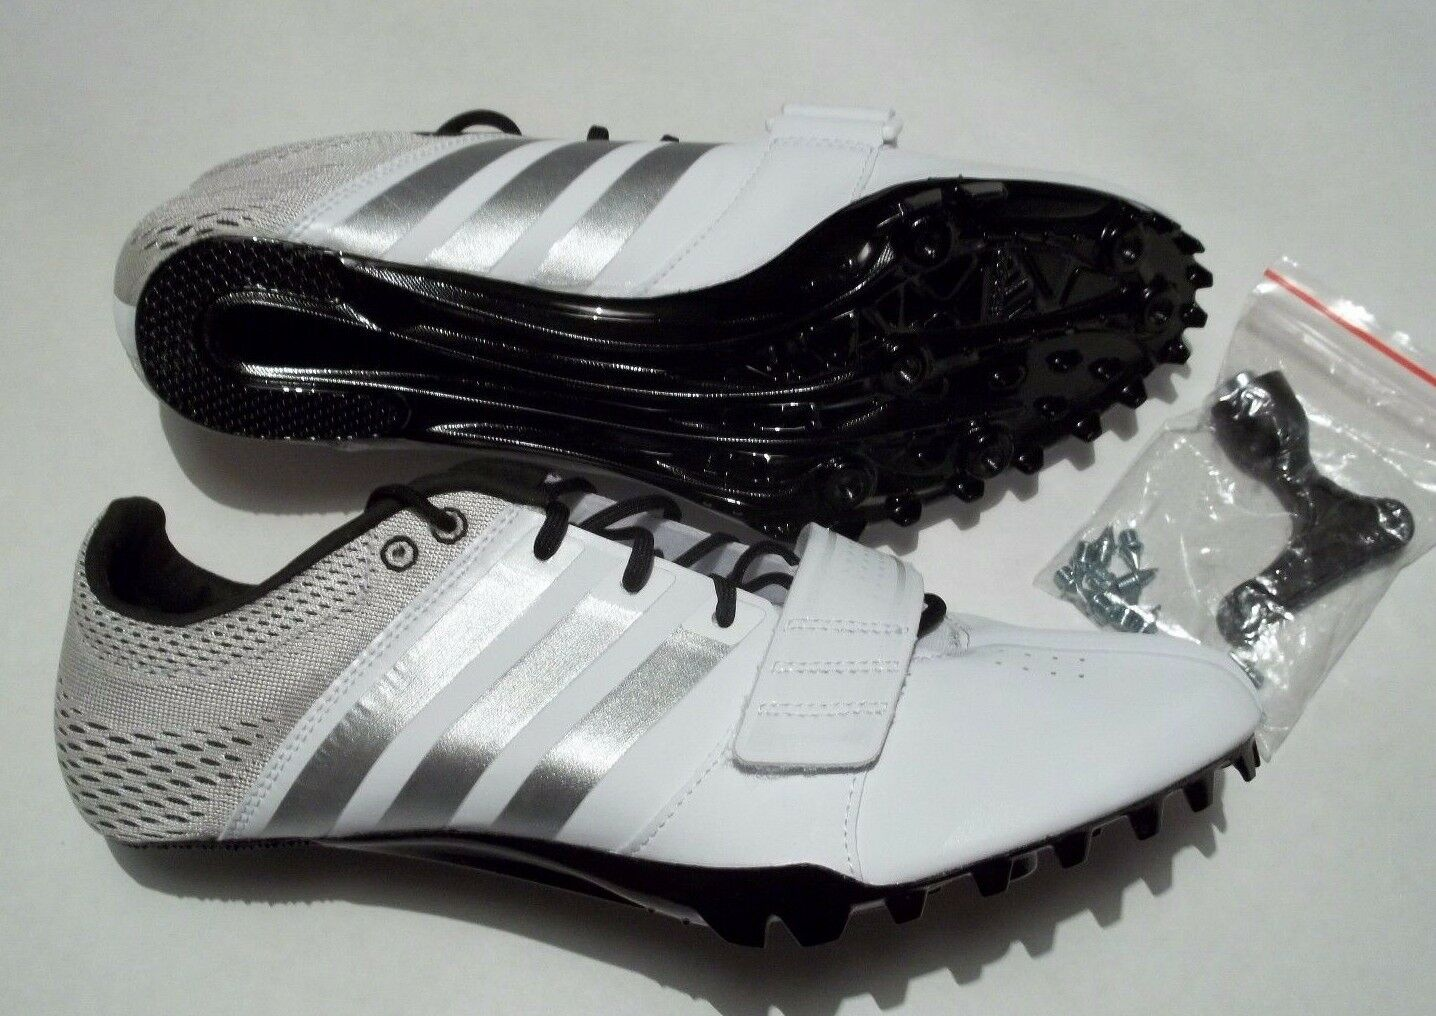 NEW Adidas Adidas NEW Prime Accelerator Size 11.5 Track Shoes With Spikes & Tool  S80336 b50df2